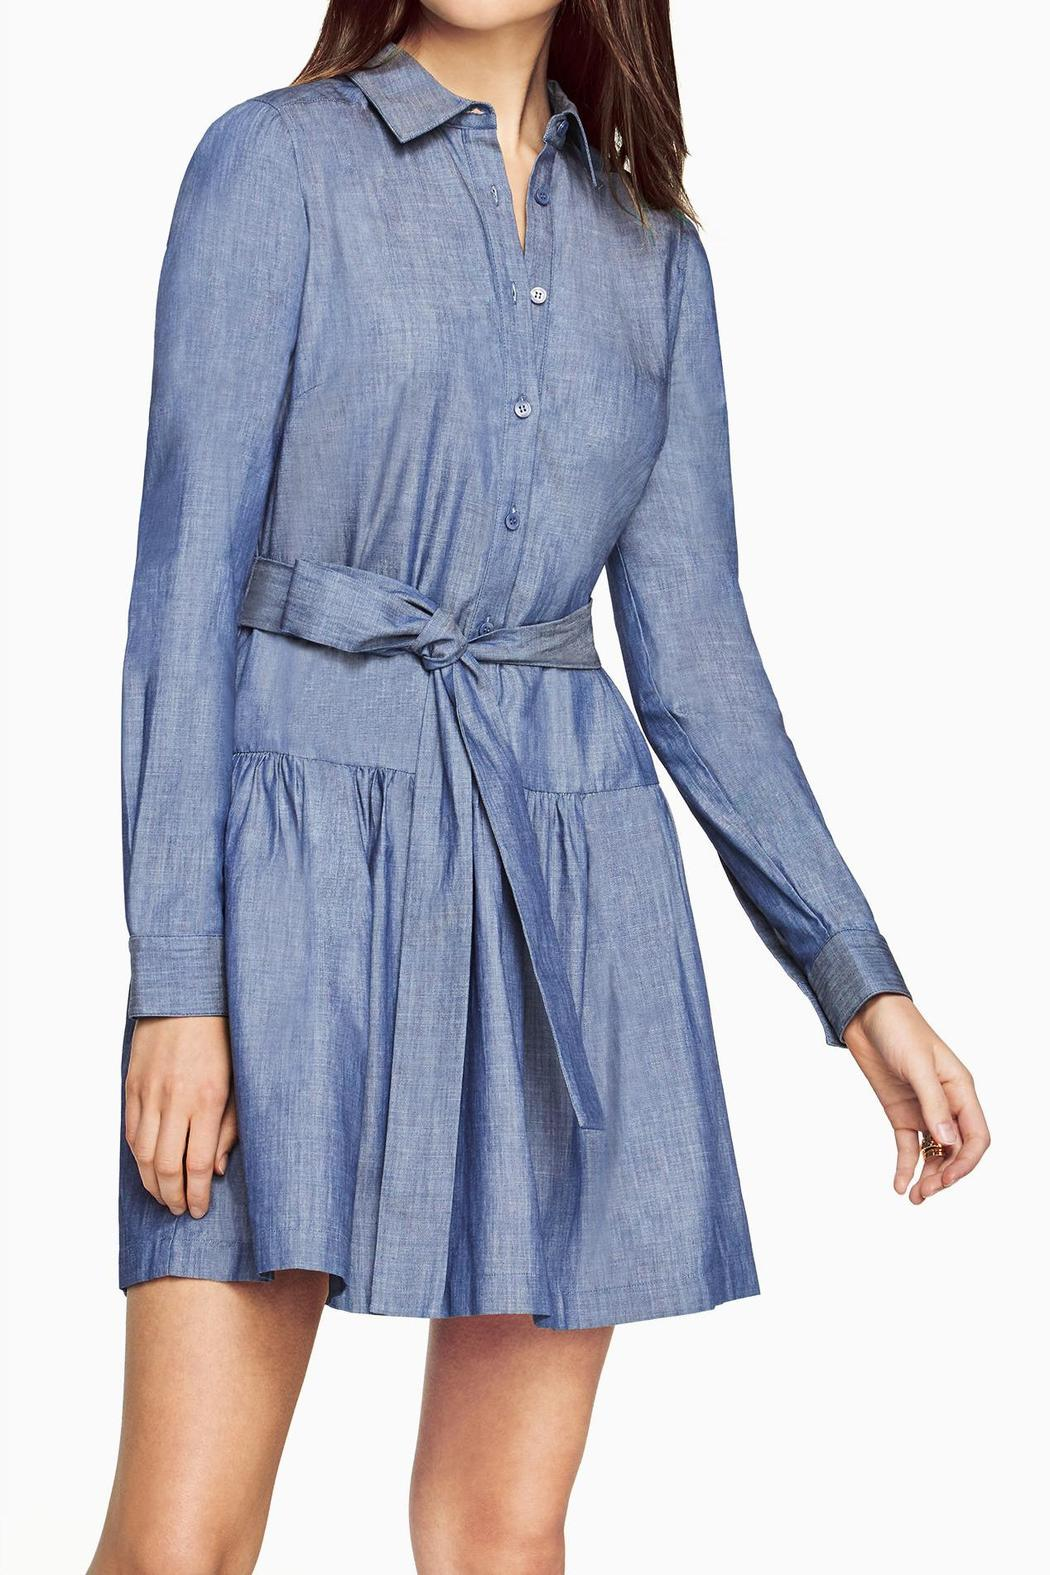 BCBG Max Azria Chambray Twill Dress - Main Image